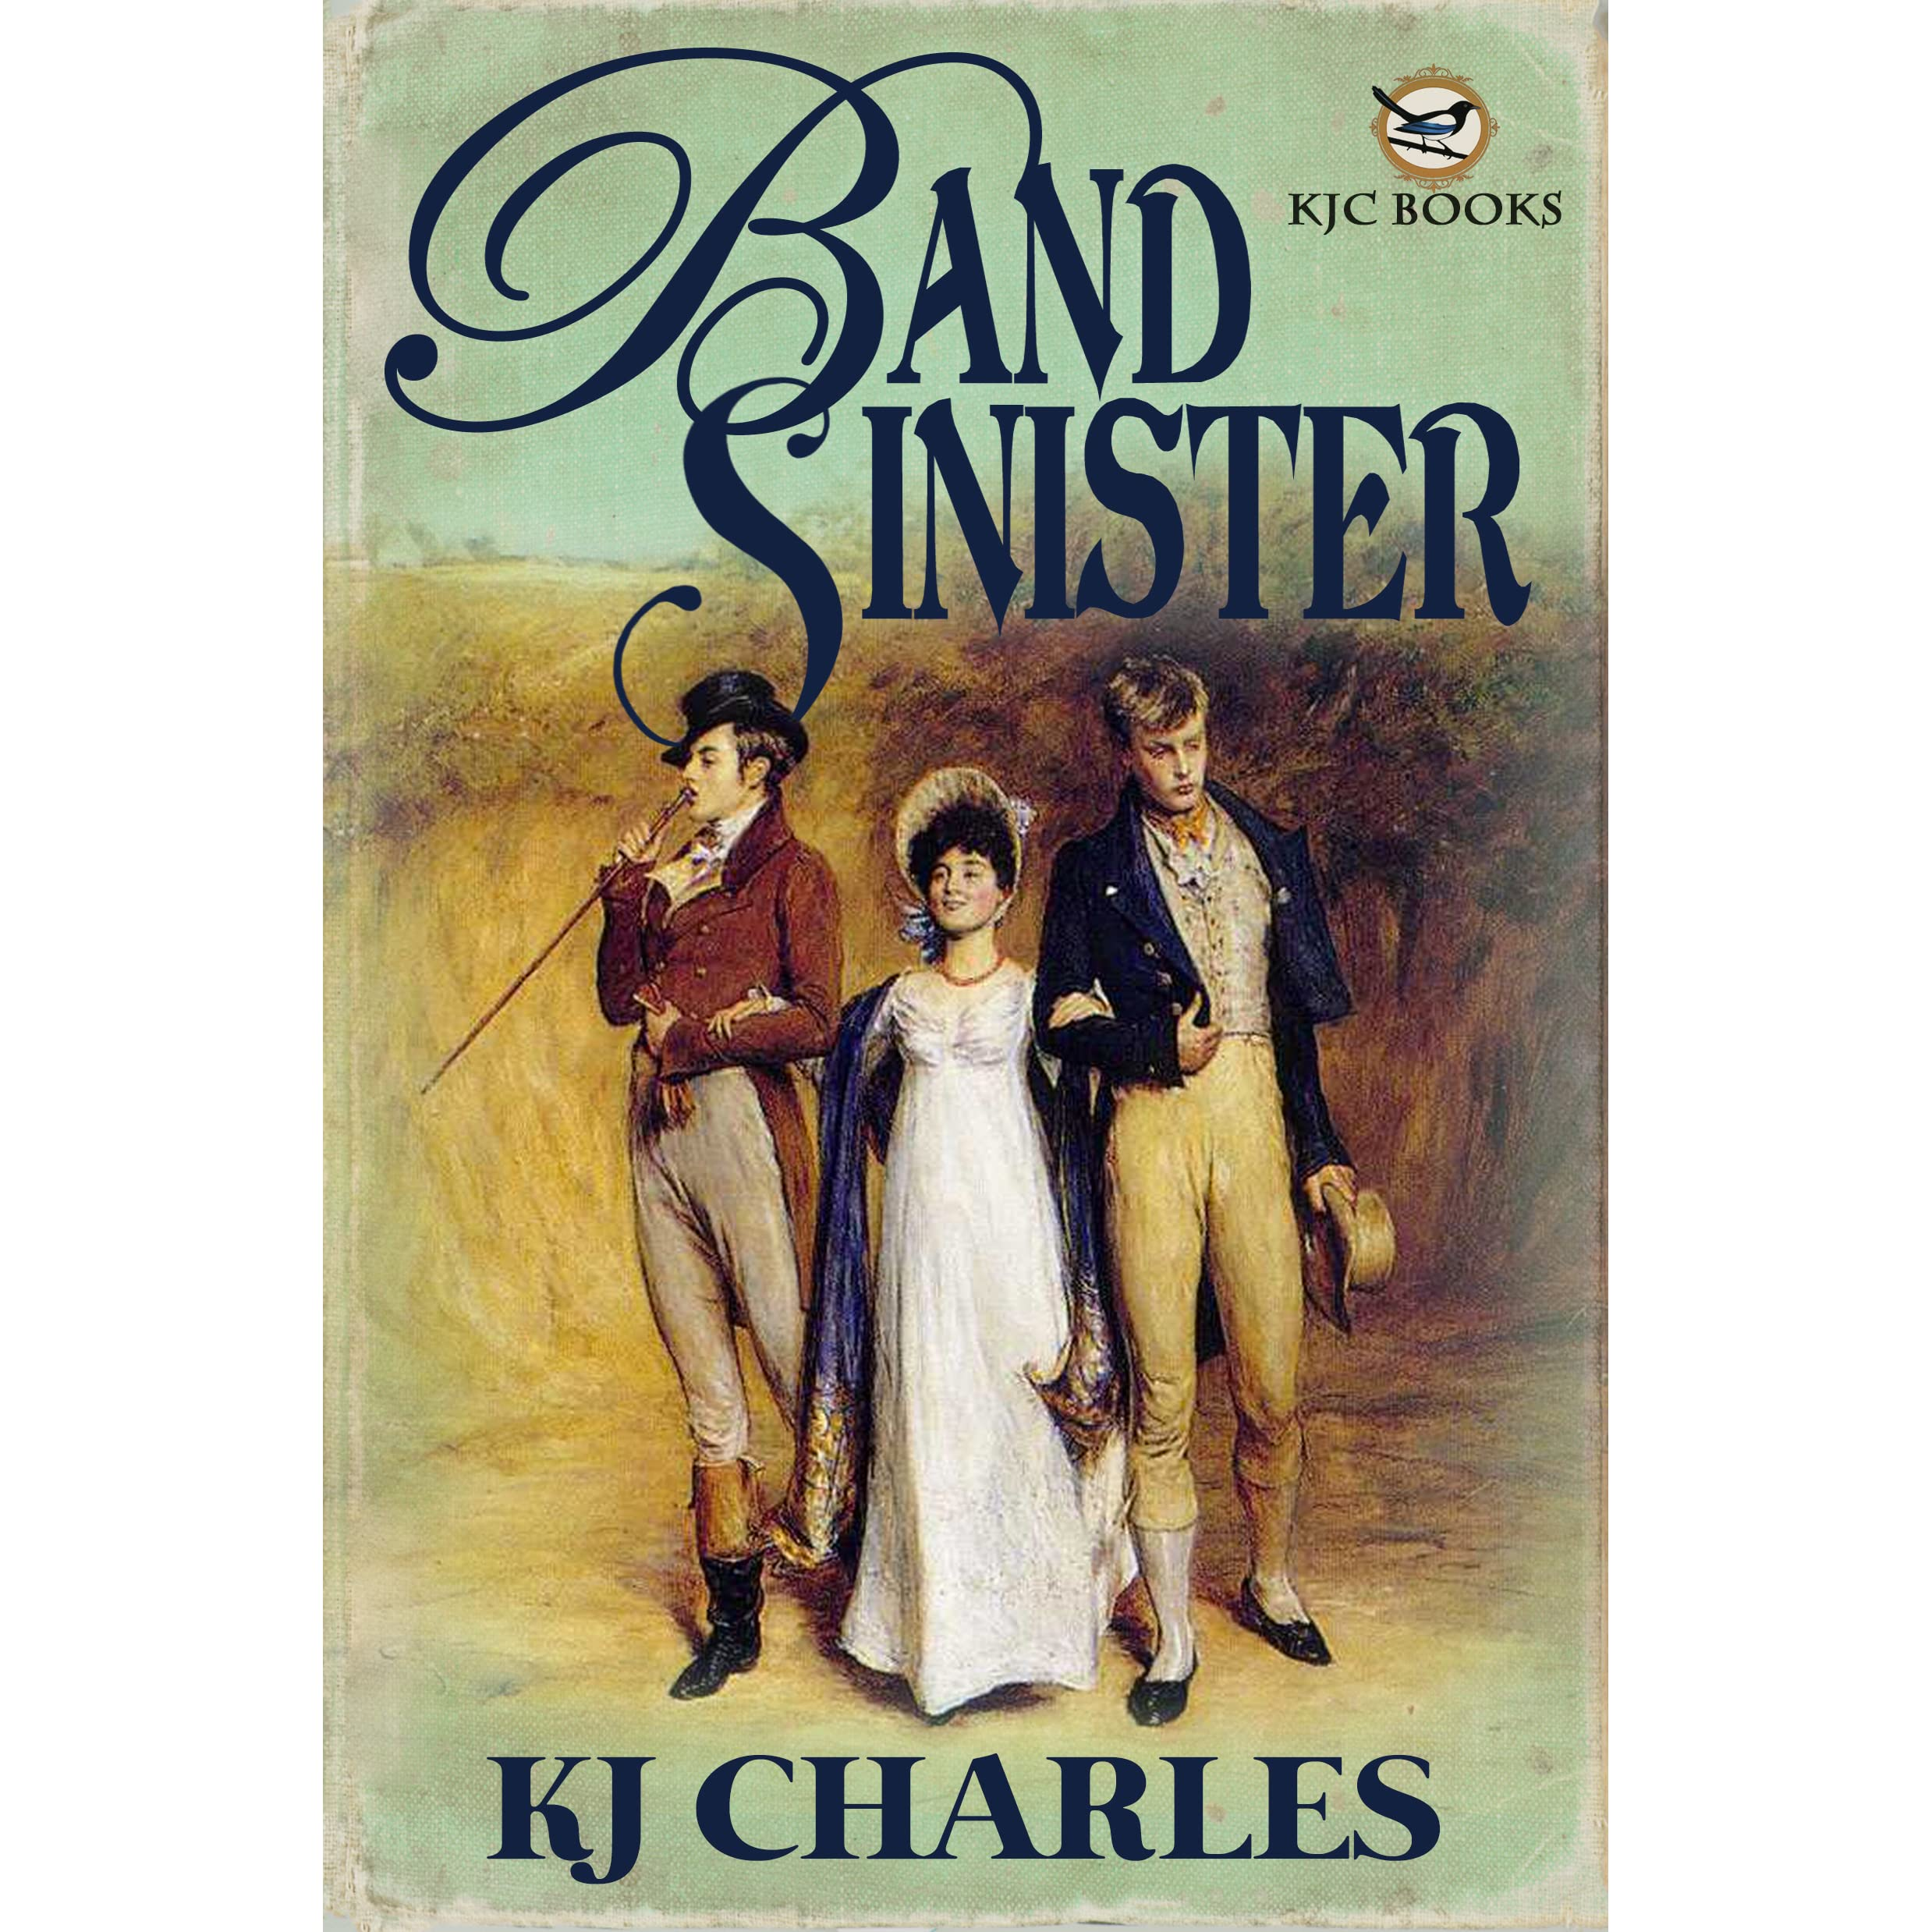 Image result for Band Sinister by KJ Charles